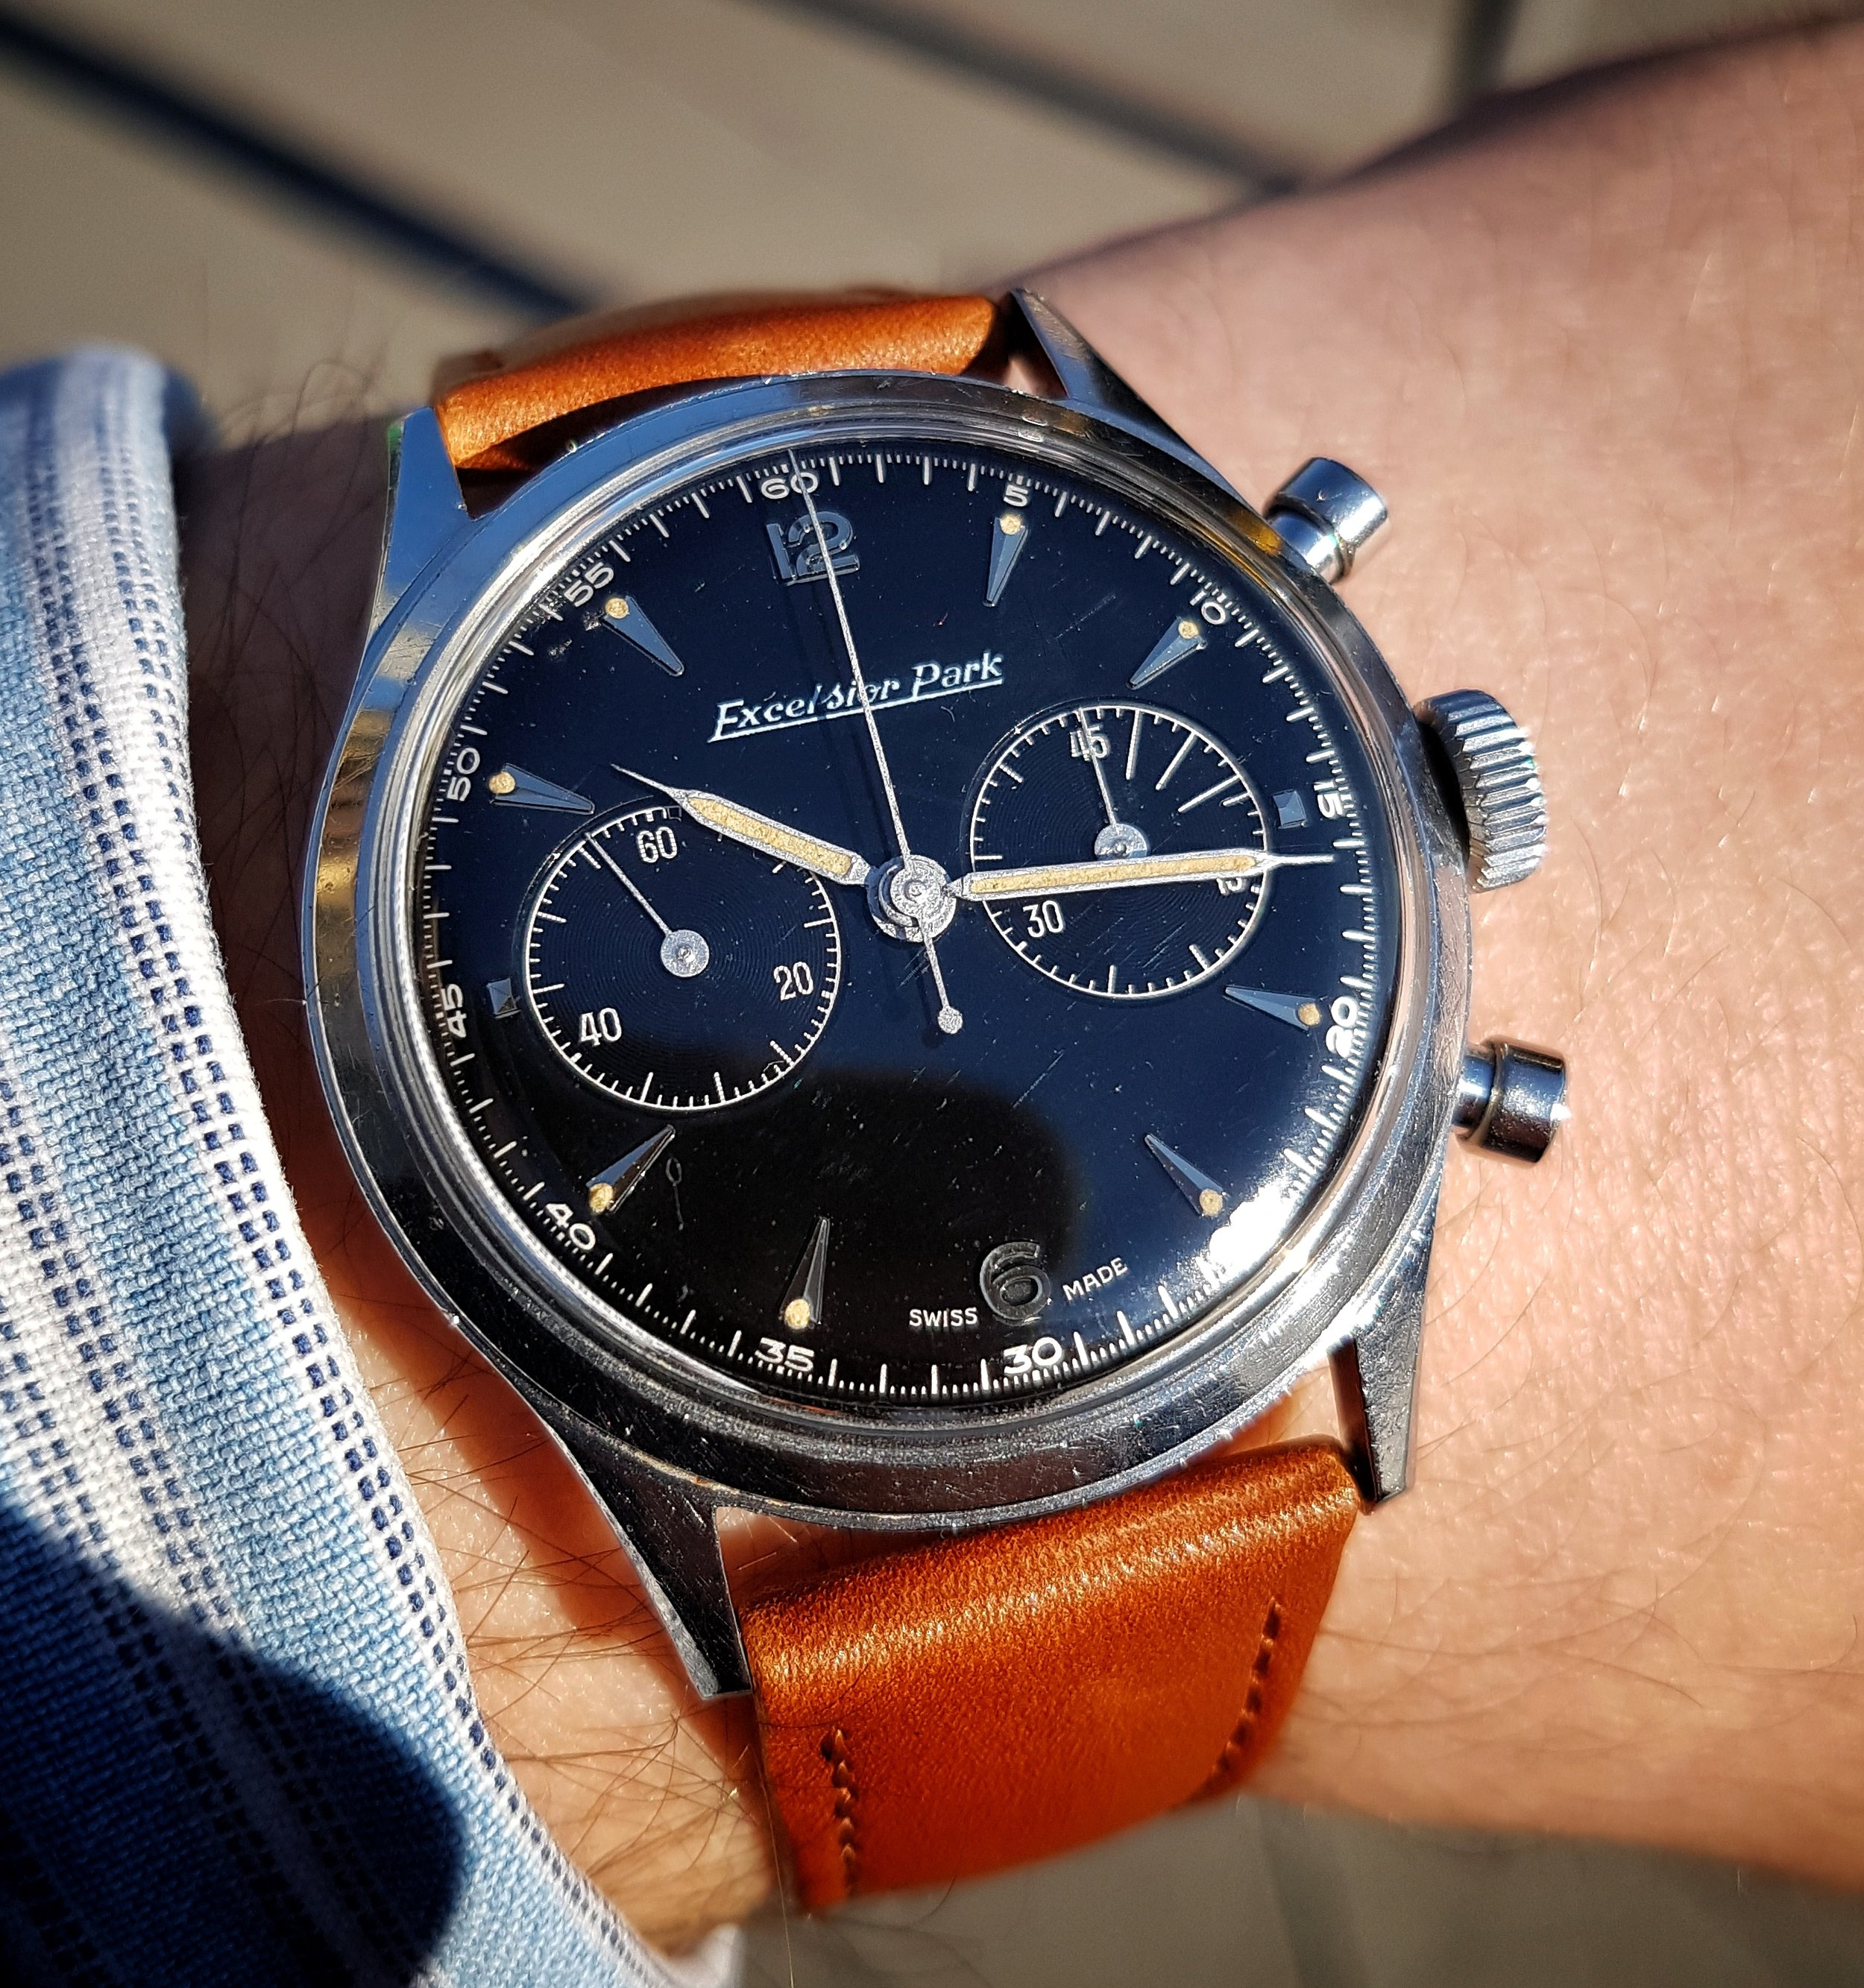 Photo courtesy of FS listing on ChronoTrader, click through for more info.